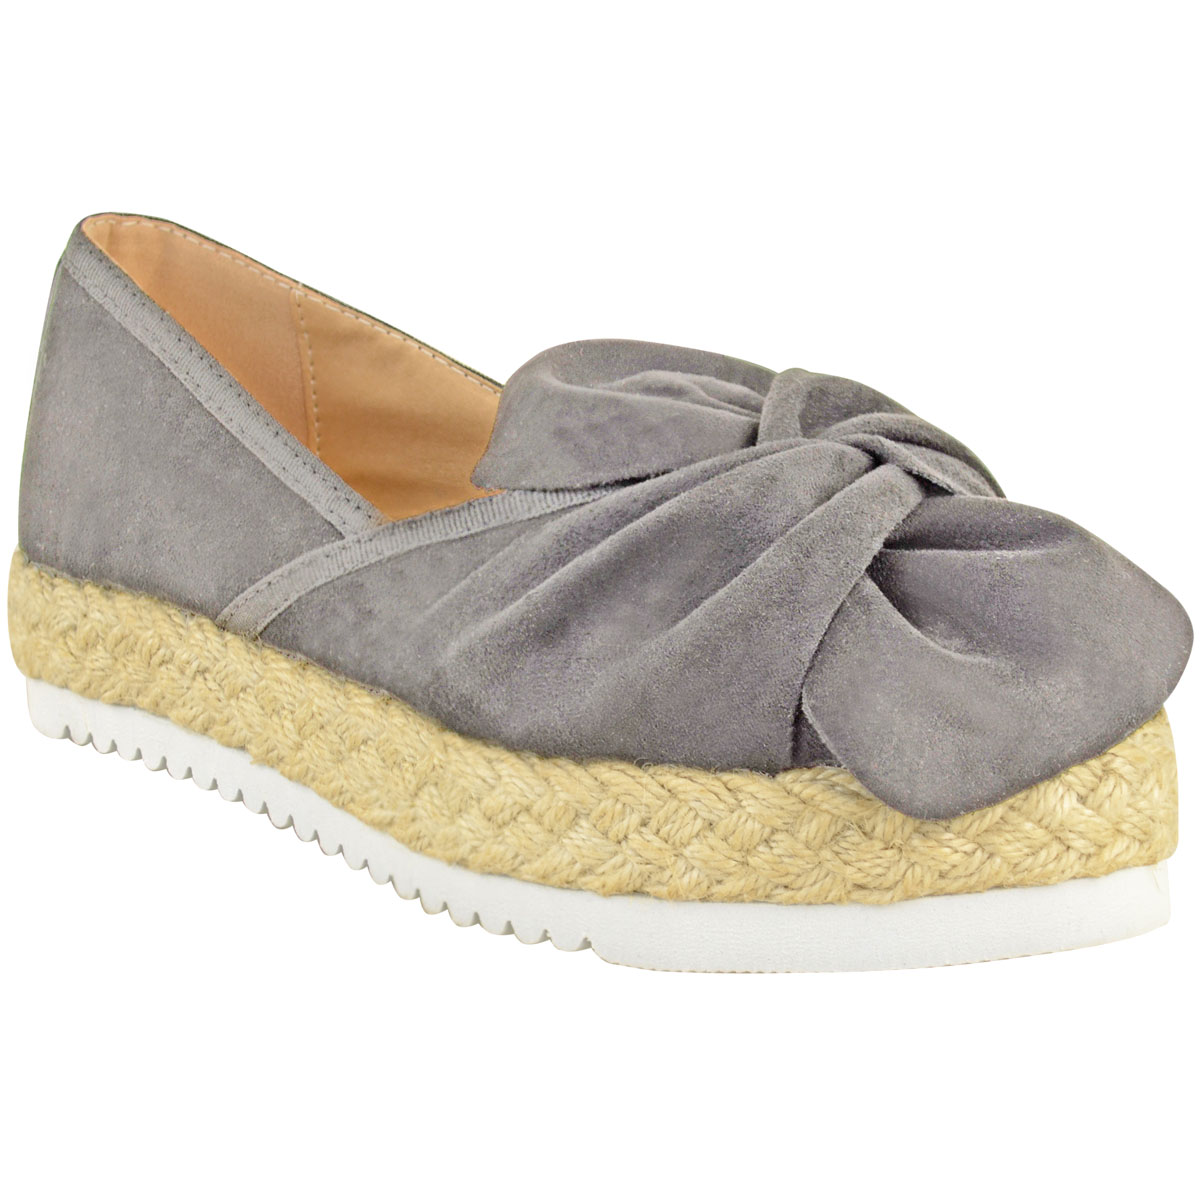 Womens-Ladies-Espadrilles-Flat-Pom-Pom-Sandals-Slip-On-Strappy-Comfy-Size-Shoes thumbnail 38